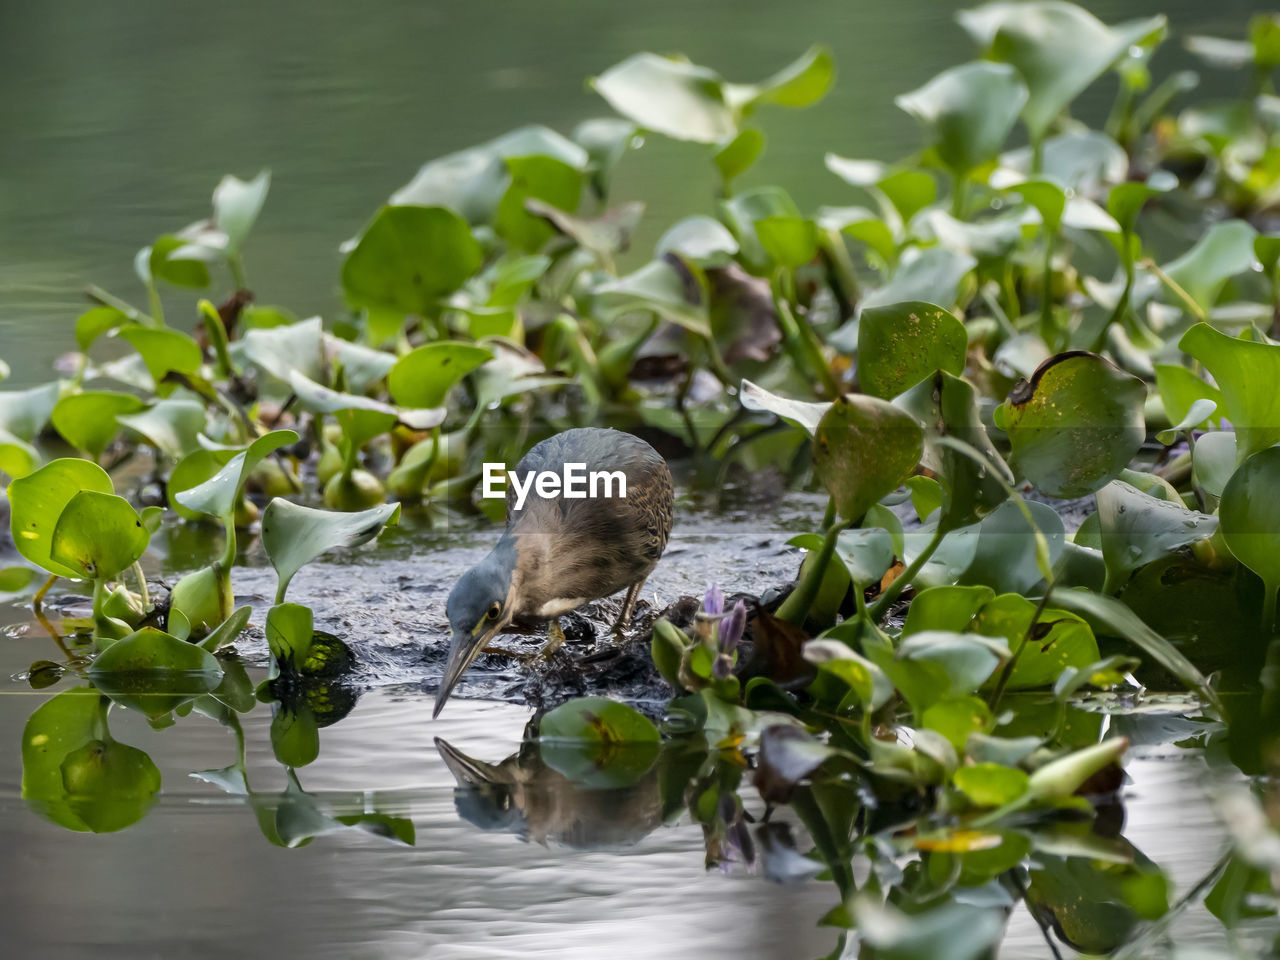 water, plant, leaf, plant part, lake, nature, animals in the wild, animal themes, animal, animal wildlife, green color, vertebrate, one animal, beauty in nature, growth, day, no people, bird, reflection, floating on water, outdoors, leaves